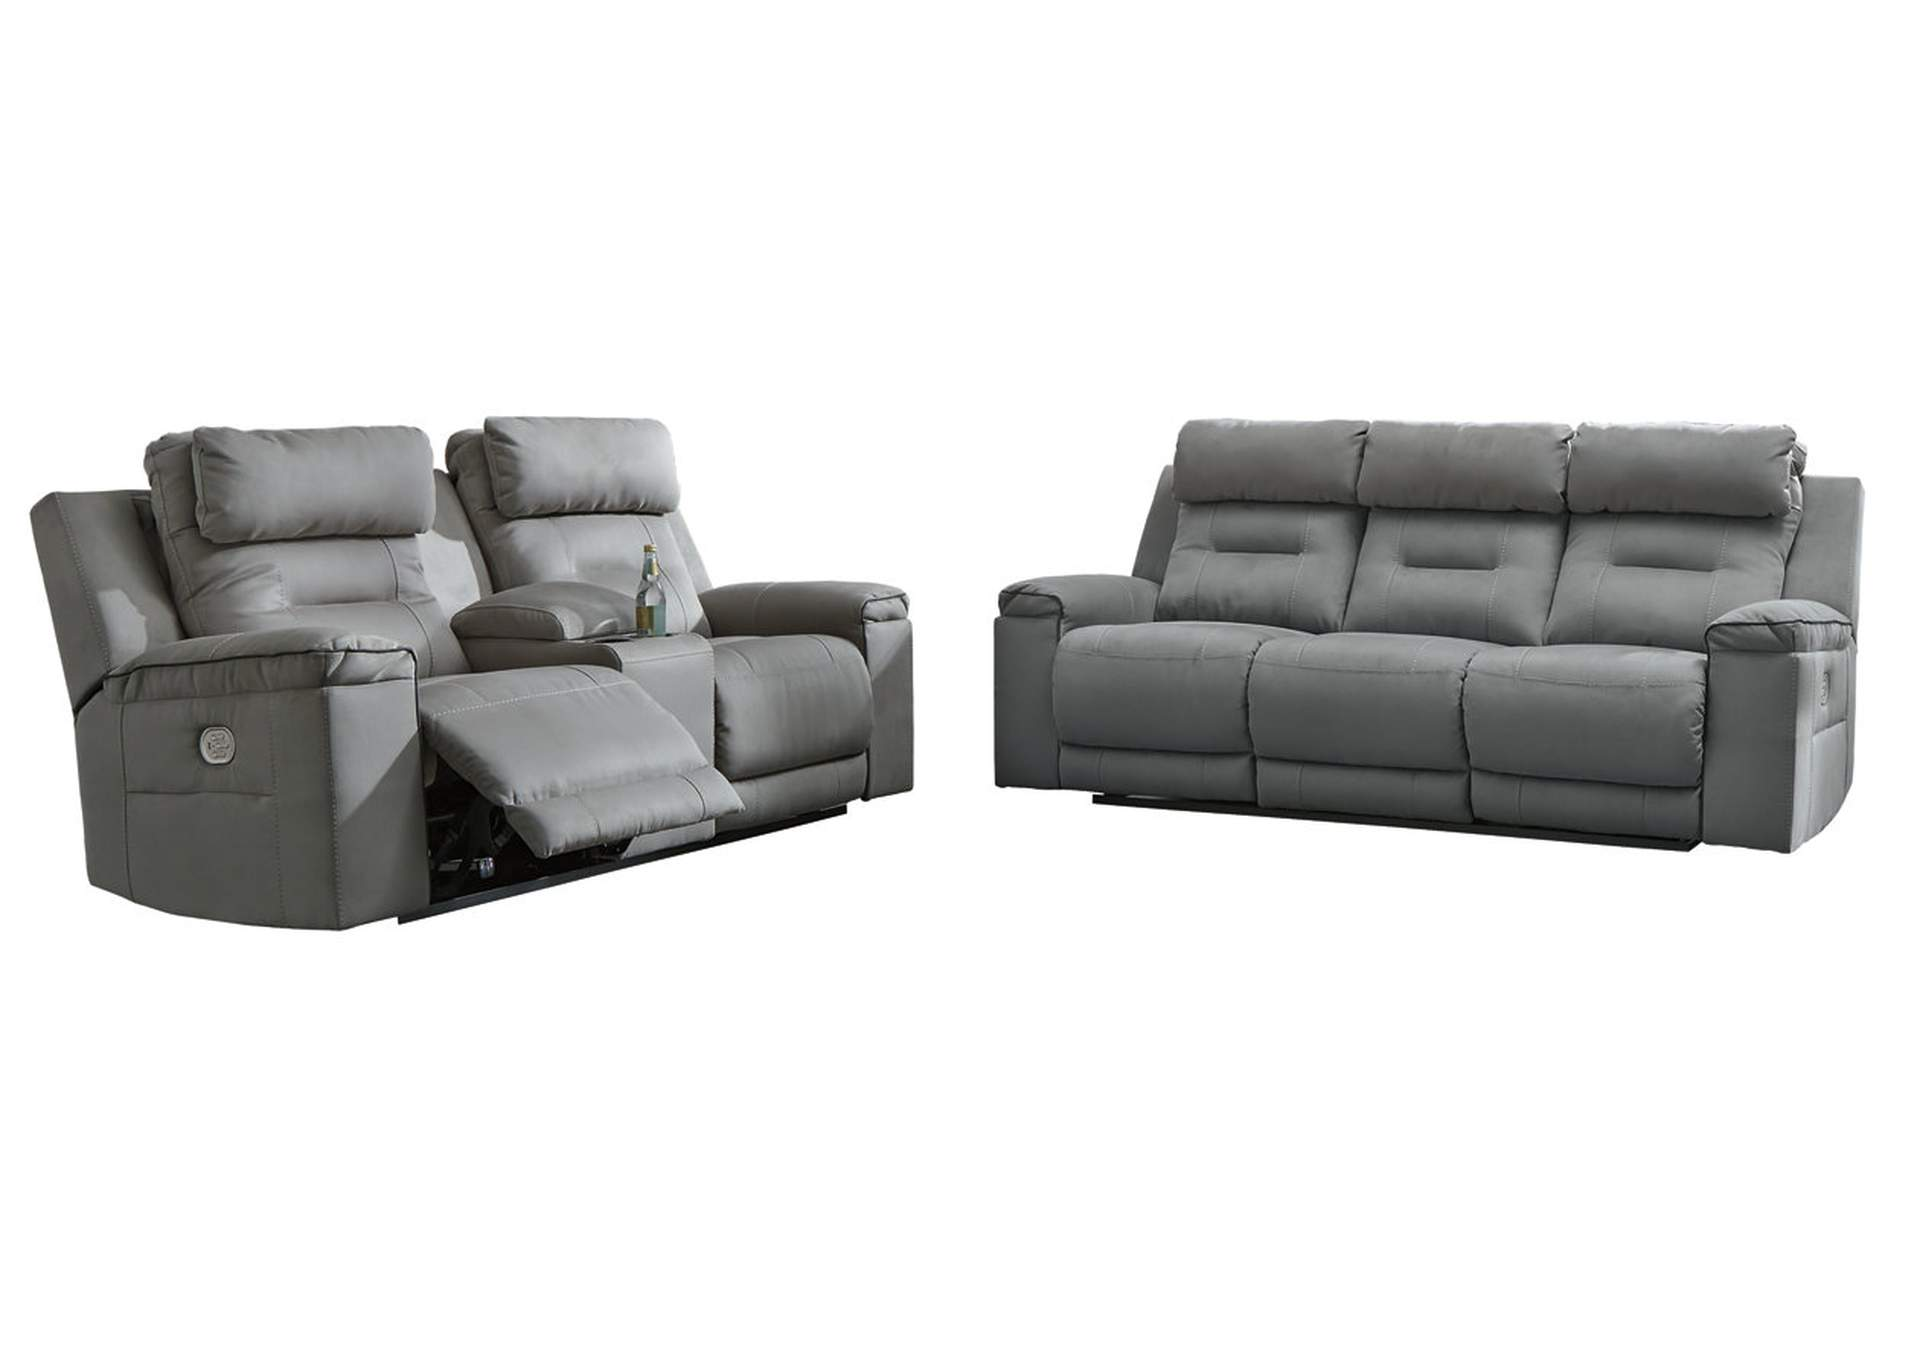 Trampton Smoke Power Reclining Sofa & Loveseat w/Console & Adjustable Headrest,Signature Design By Ashley